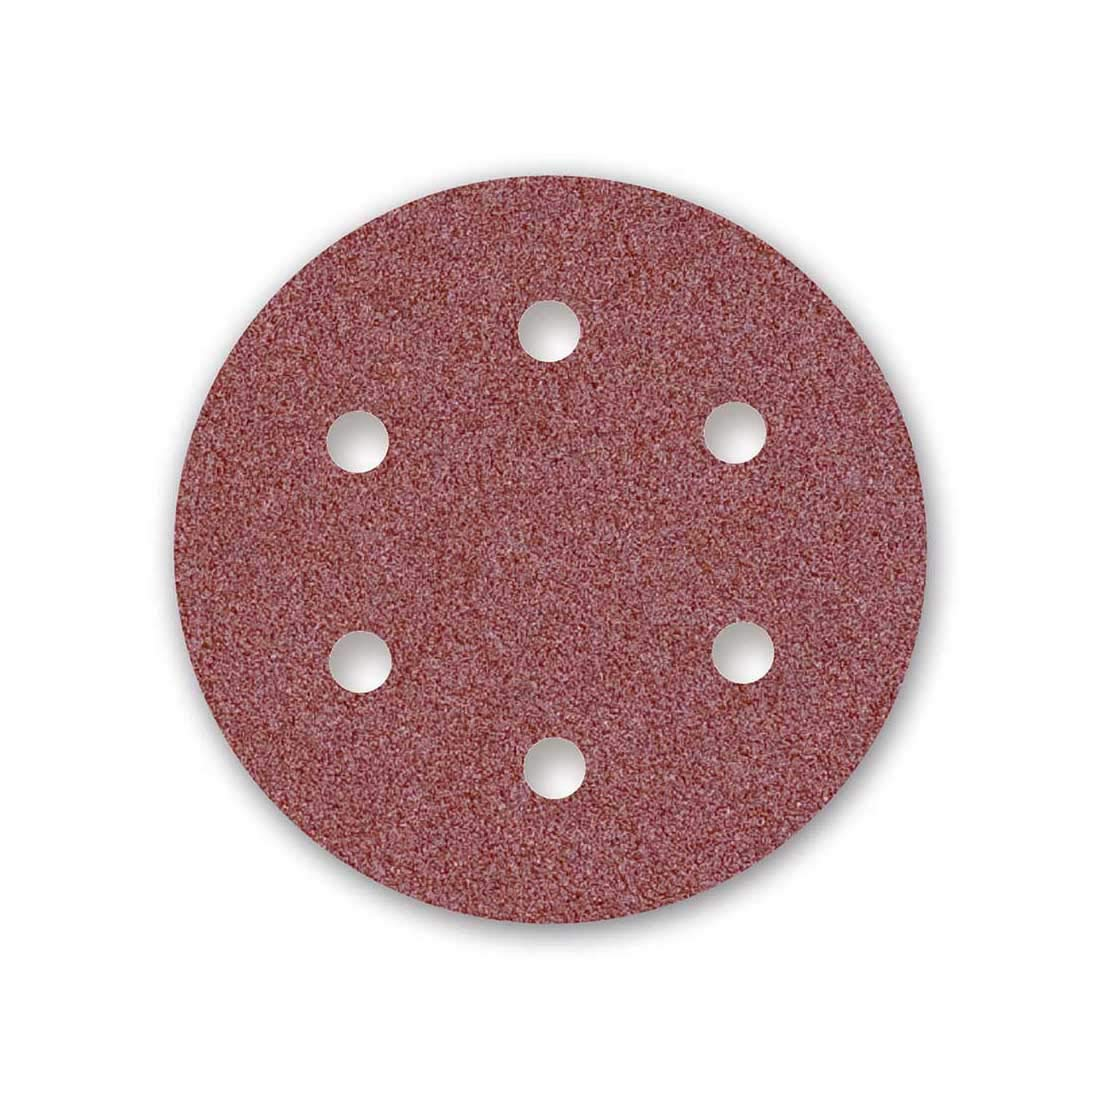 25 MENZER Hook & Loop Sanding Discs for Drywall Sanders Ø 225 mm - Grit 120-6 hole